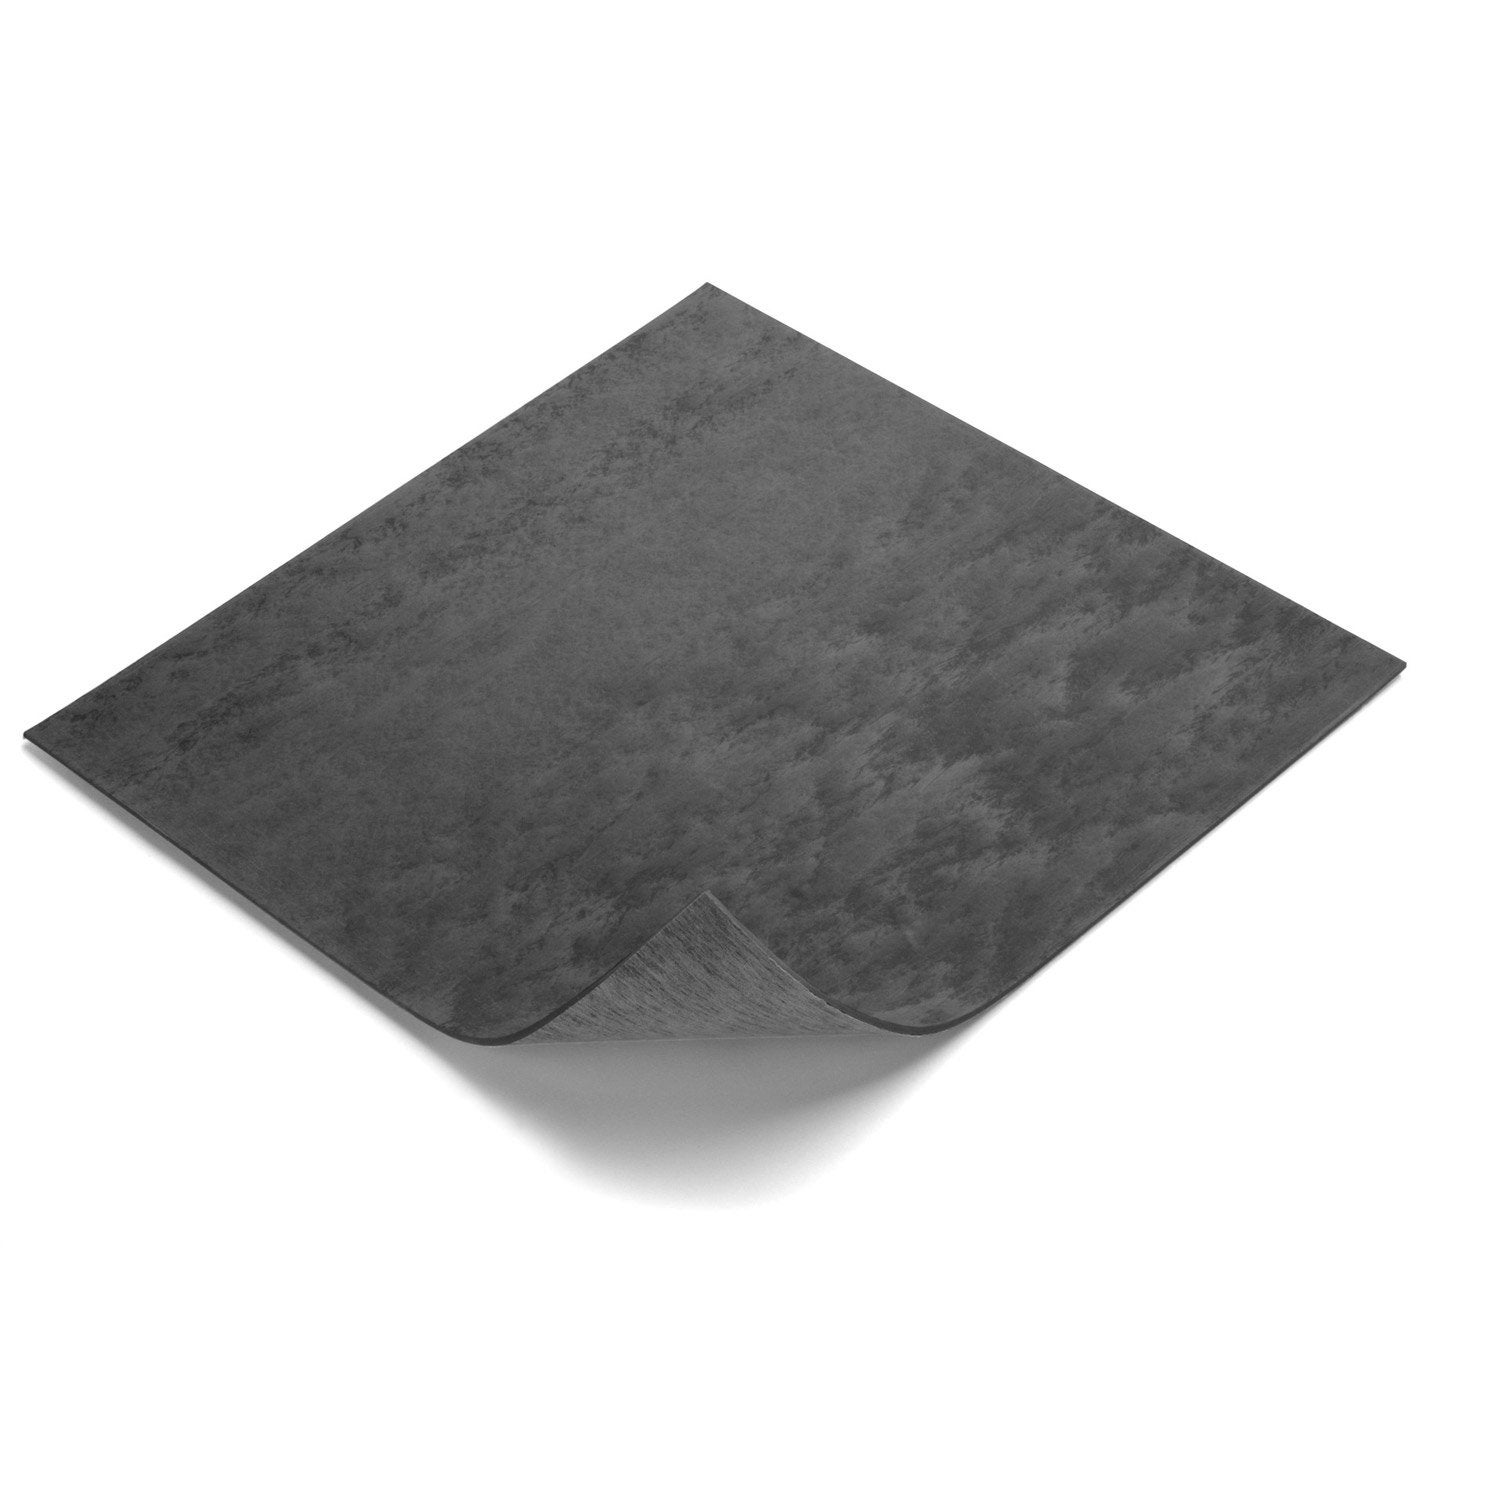 4 plaques d 39 isolant mural acoustique coller noma silence - Feuille stratifie a coller leroy merlin ...